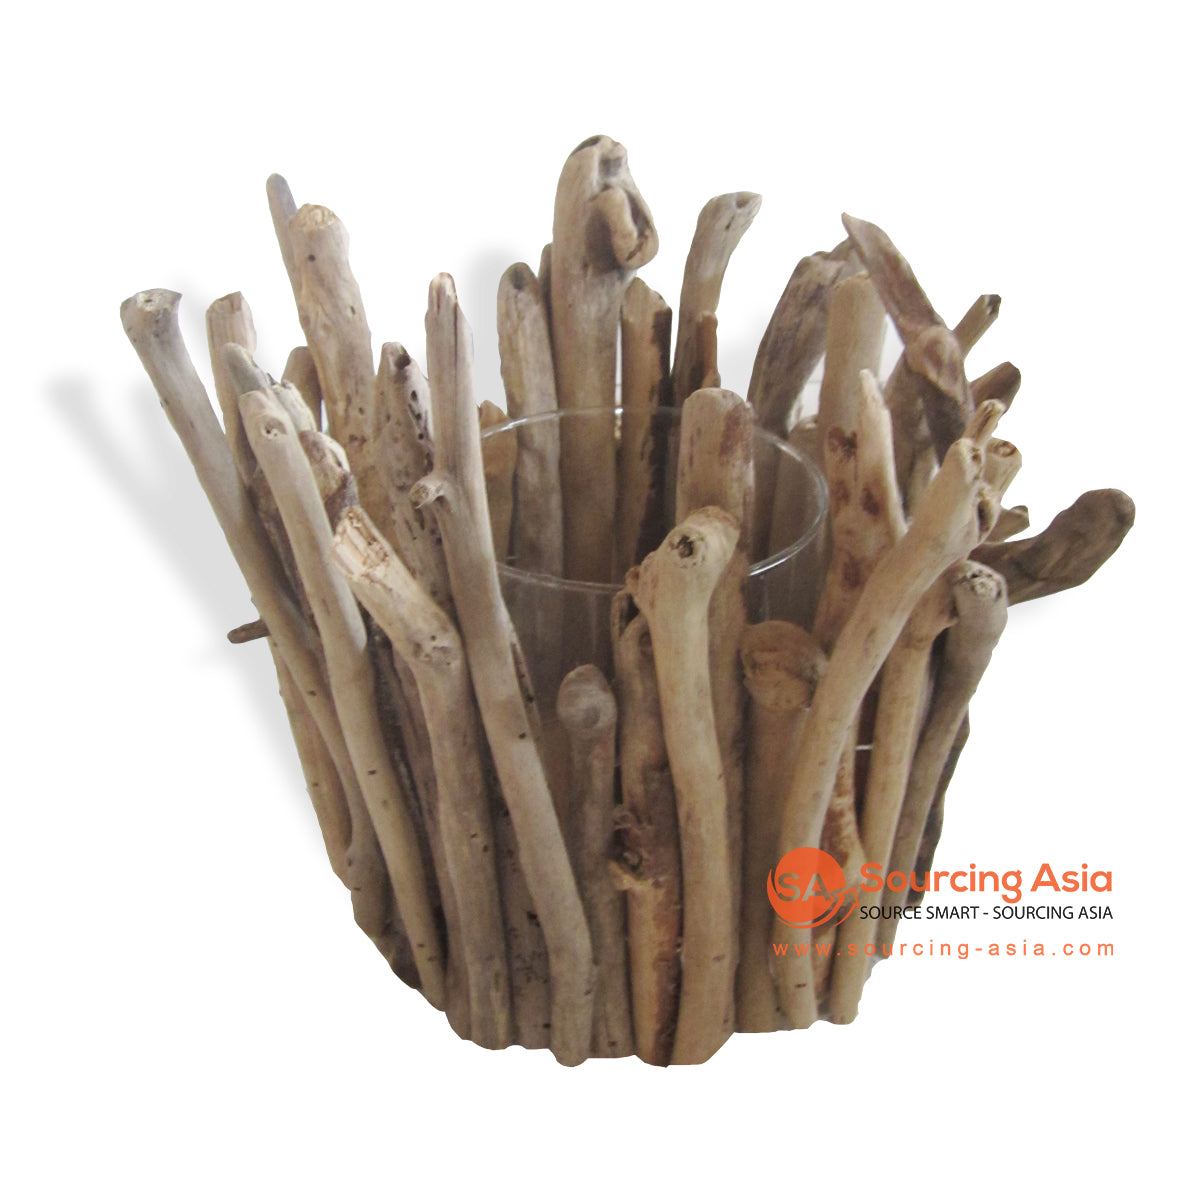 HAN029 DRIFTWOOD CANDLE HOLDER